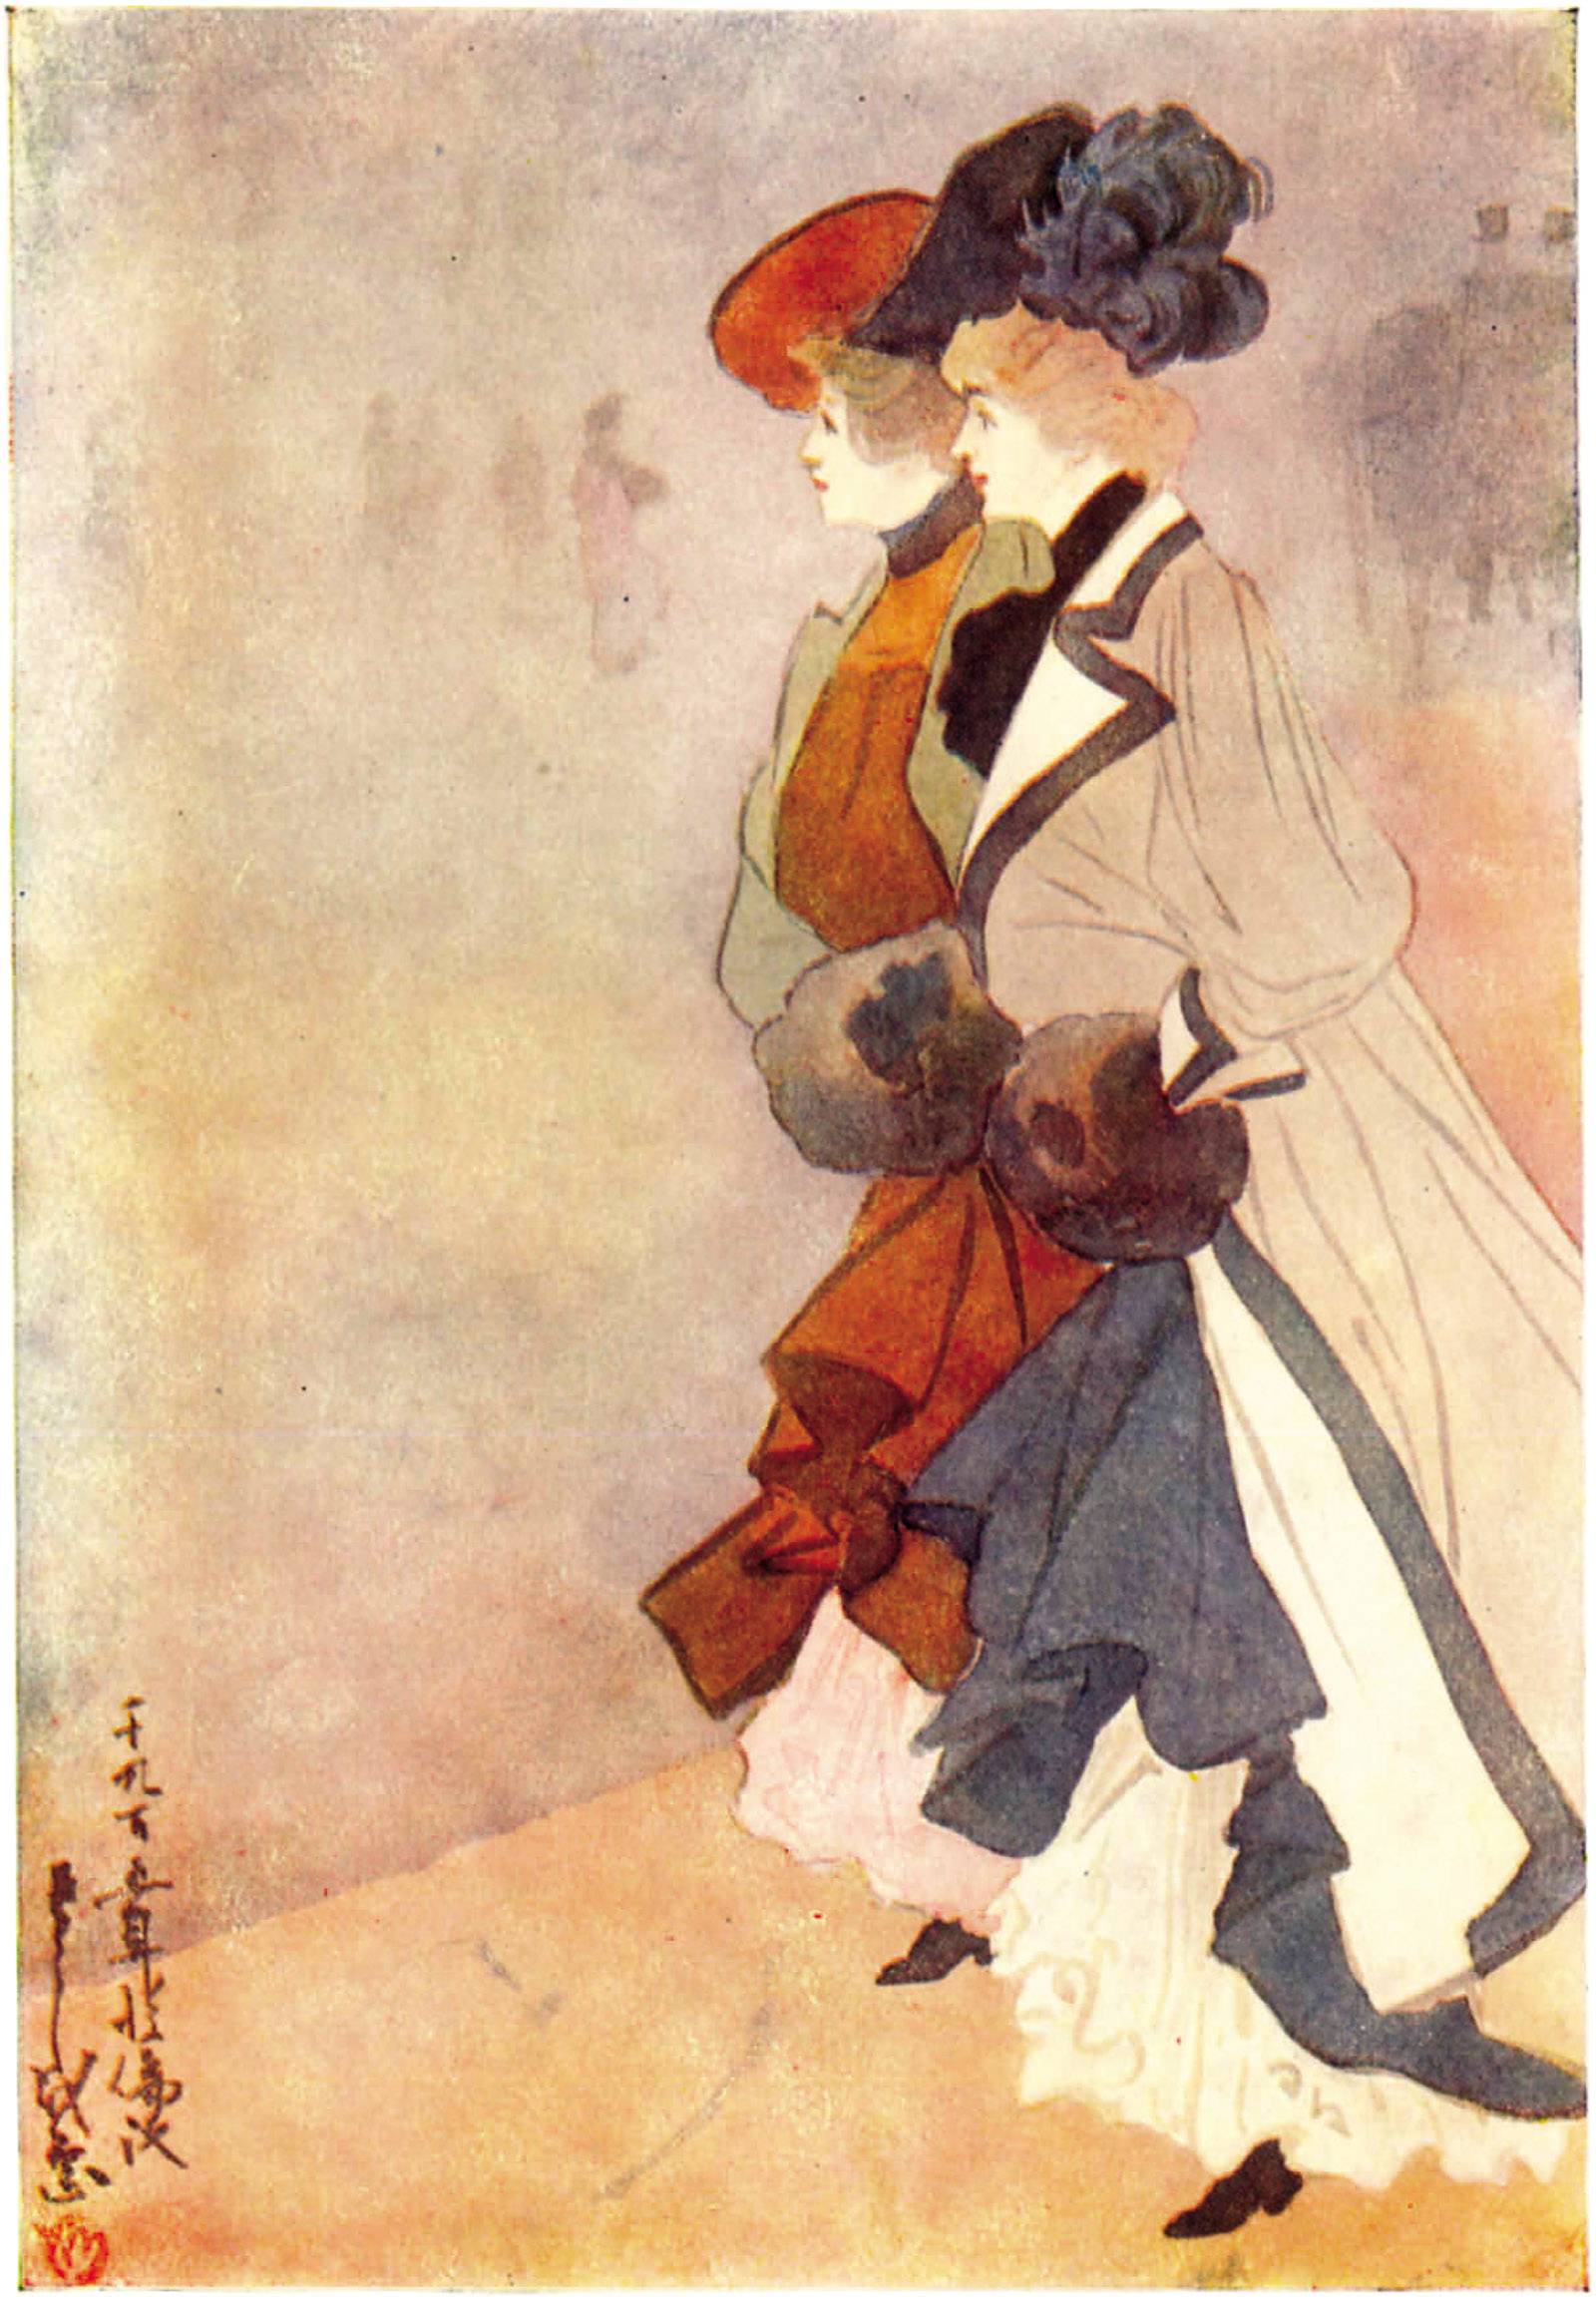 Yoshio Markino: Fog: Ladies Crossing Piccadilly, first published in W. J. Loftie's The Colour of London, 1907